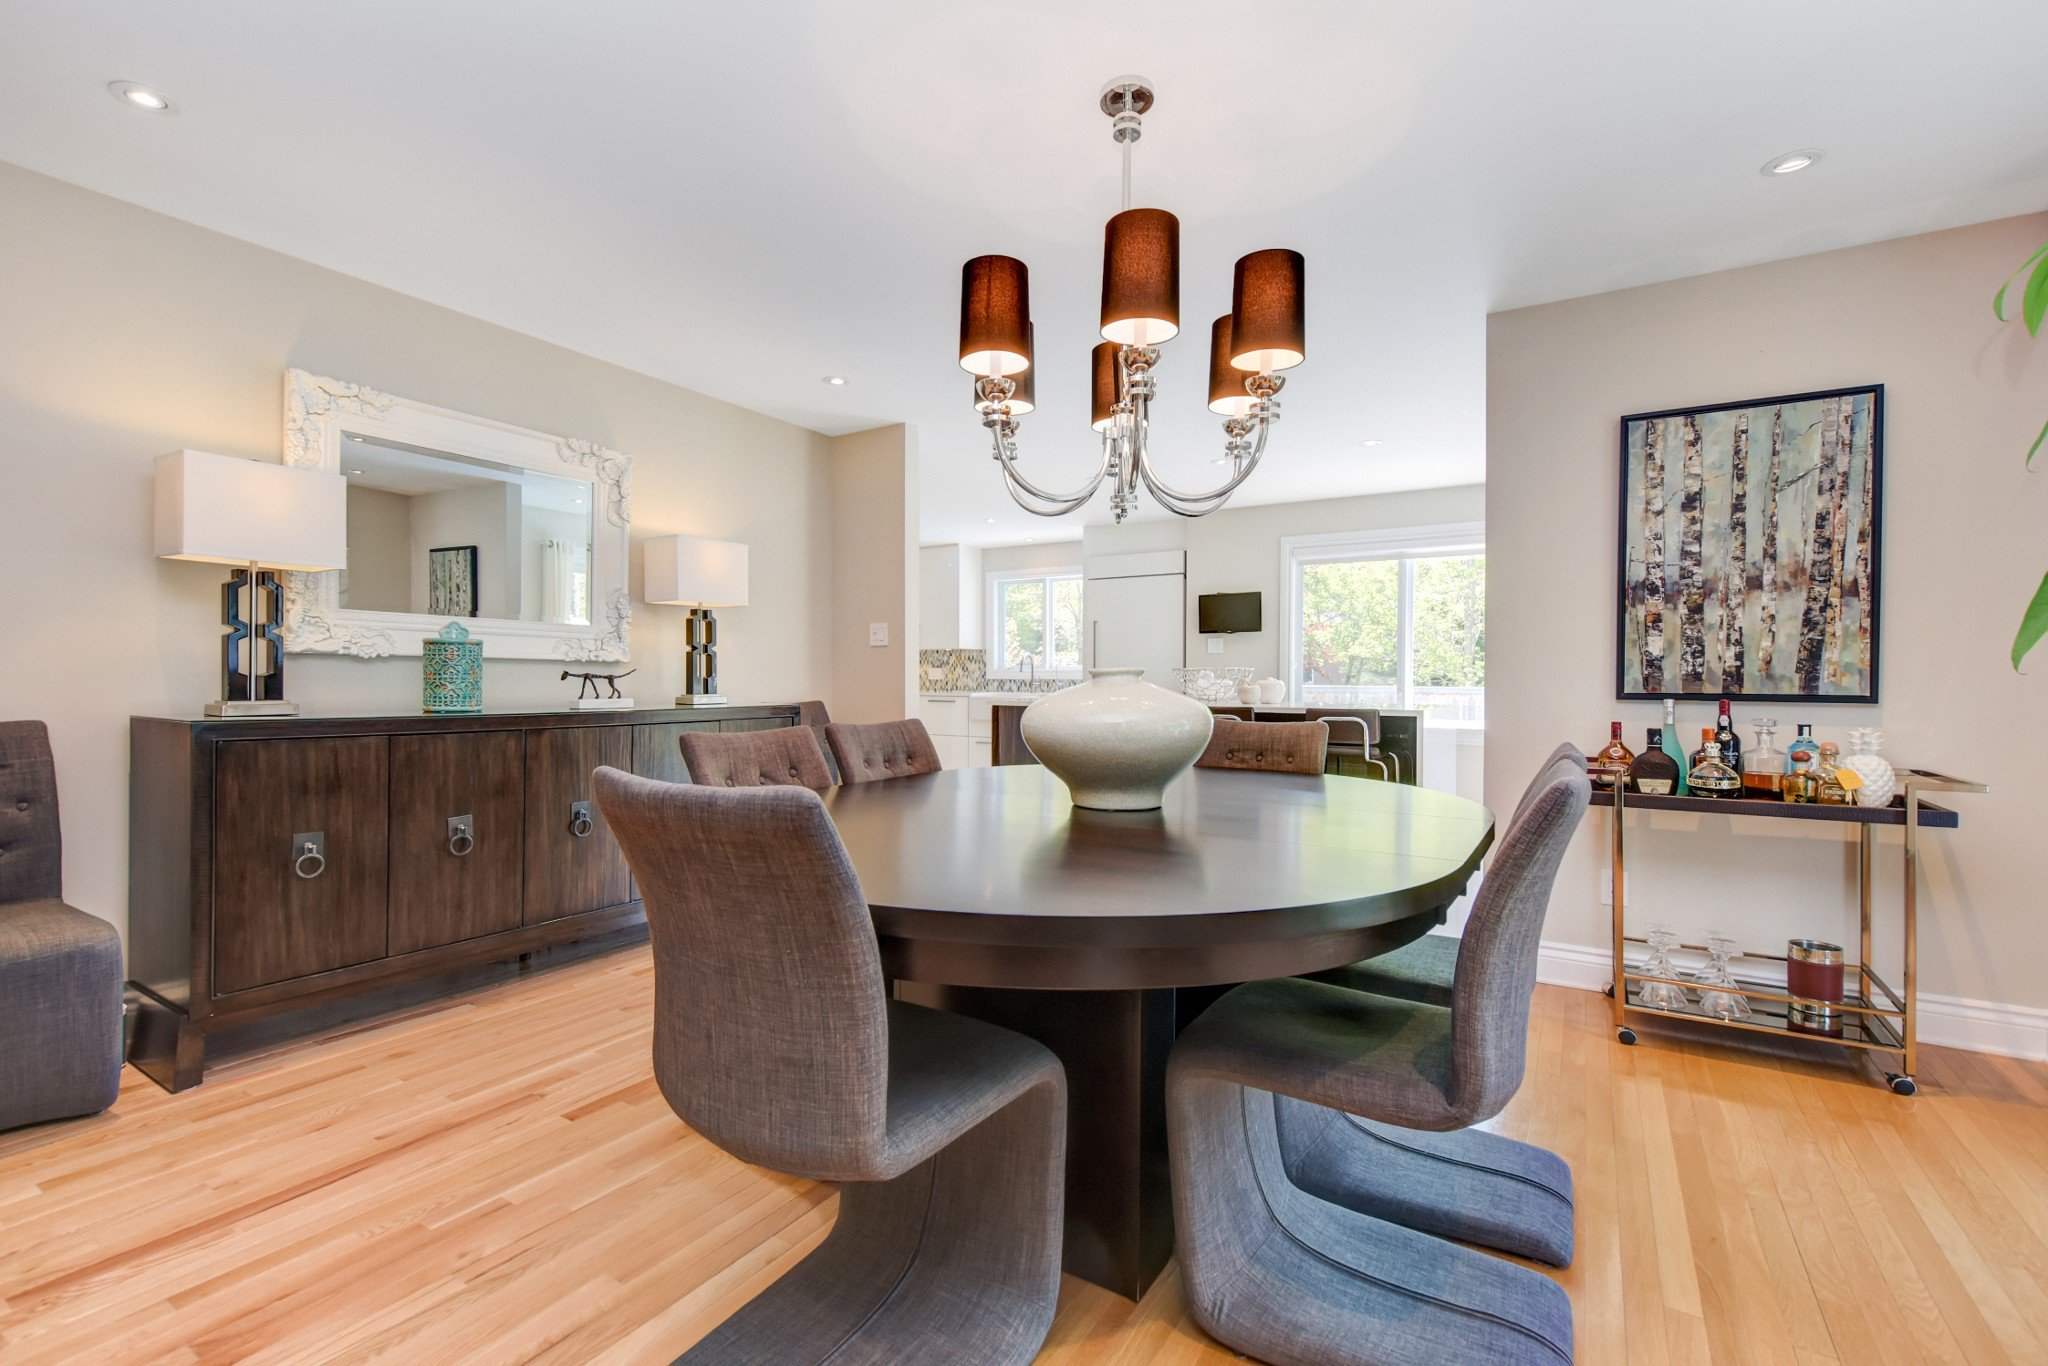 Photo 20: Photos: 1490 REINDEER WAY.: Greely House for sale (Ottawa)  : MLS®# 1109530